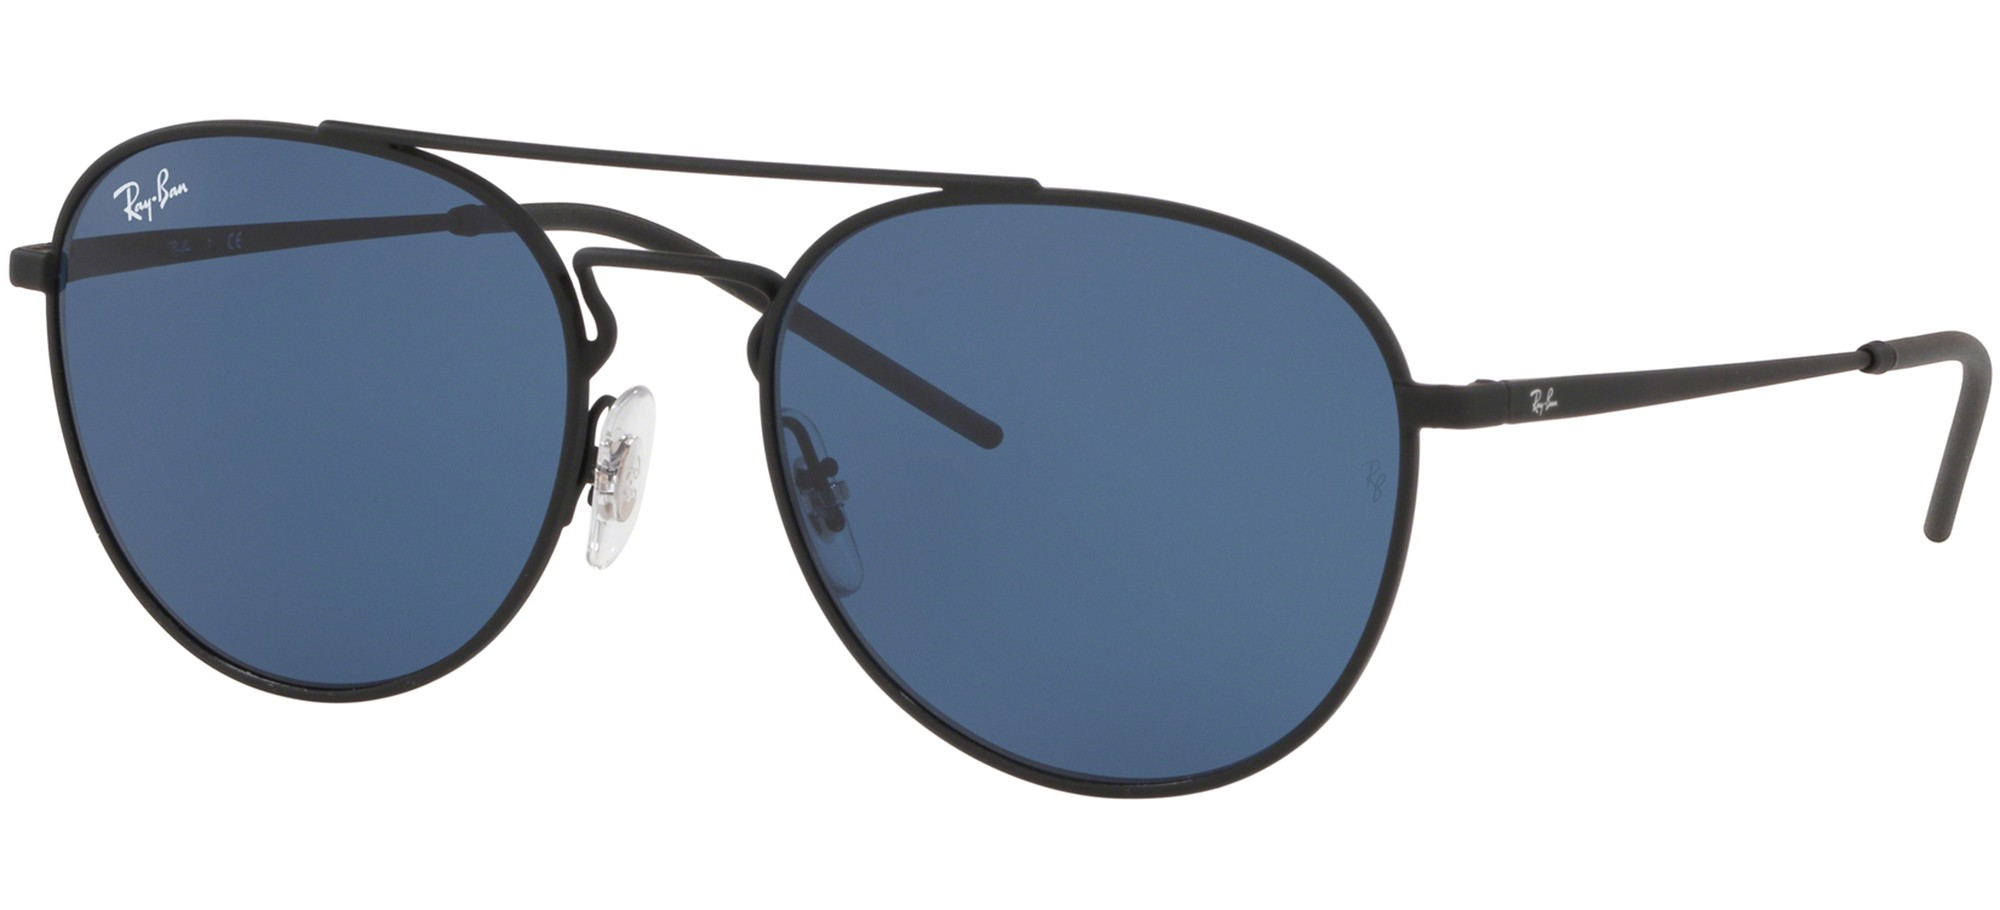 Ray-Ban sunglasses RB 3589